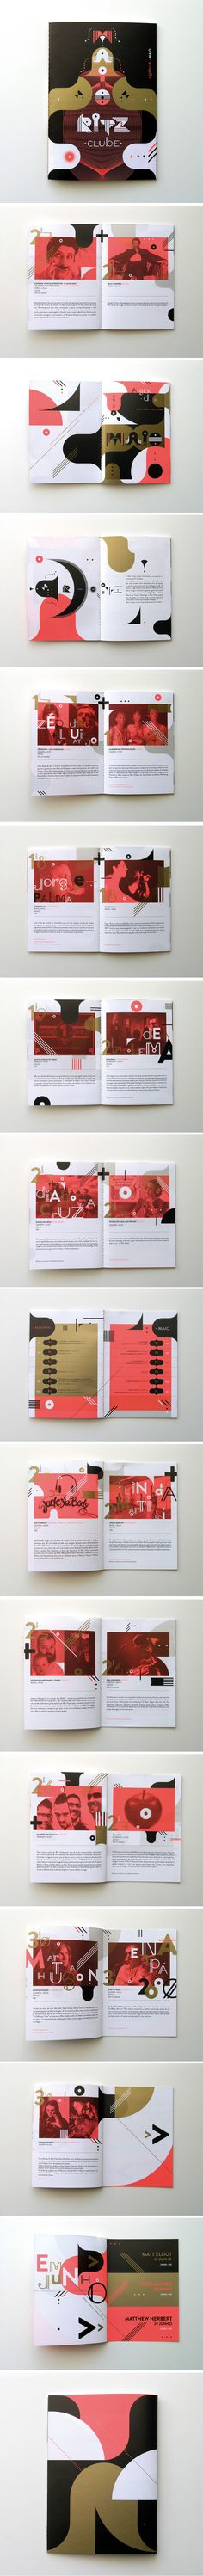 Art Direction Carlos Guerreiro  Design Carlos Guerreiro & José Mendes  Illustration Carlos Guerreiro  Site José Mendes & Carlos Ceia  ritzclube.com  Original typography Carlos Guerreiro, José Mendes & Luís Alvoeiro    Brand identity system for Ritz Clube – concert hall and bar. The objective was to reinterpret the language par excellence of the decorative arts of the decades of 20s and 30s – The Art Deco.